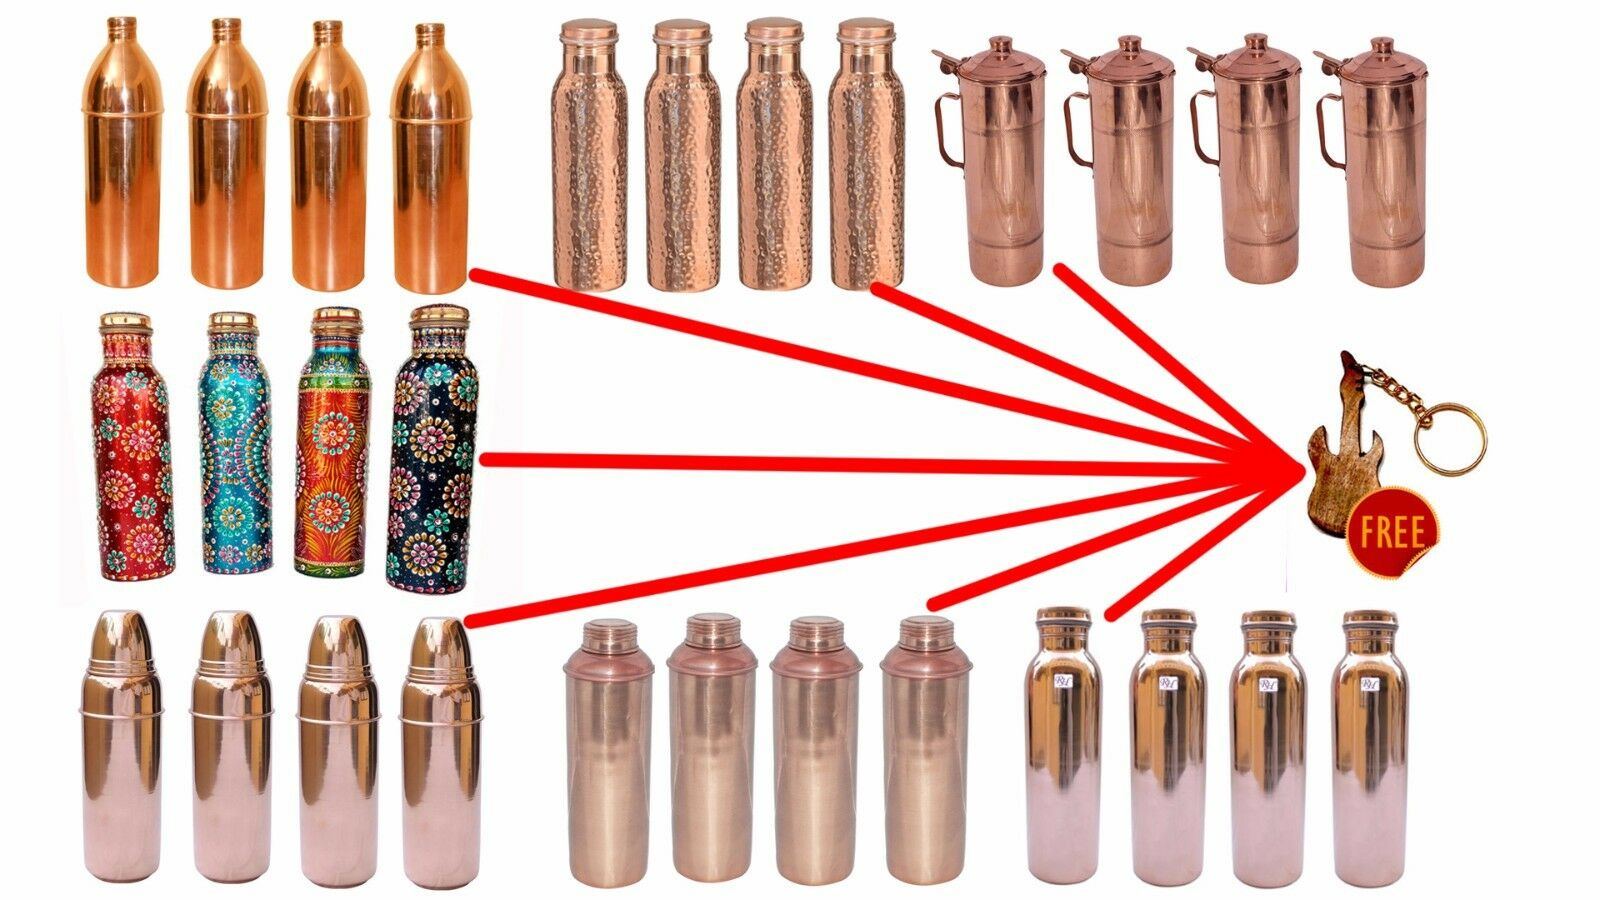 SET OF 4 PURE COPPER WATER BOTTLE GOOD FOR HEALTH SCHOOL,TRAVELING,SPORTS,HOME